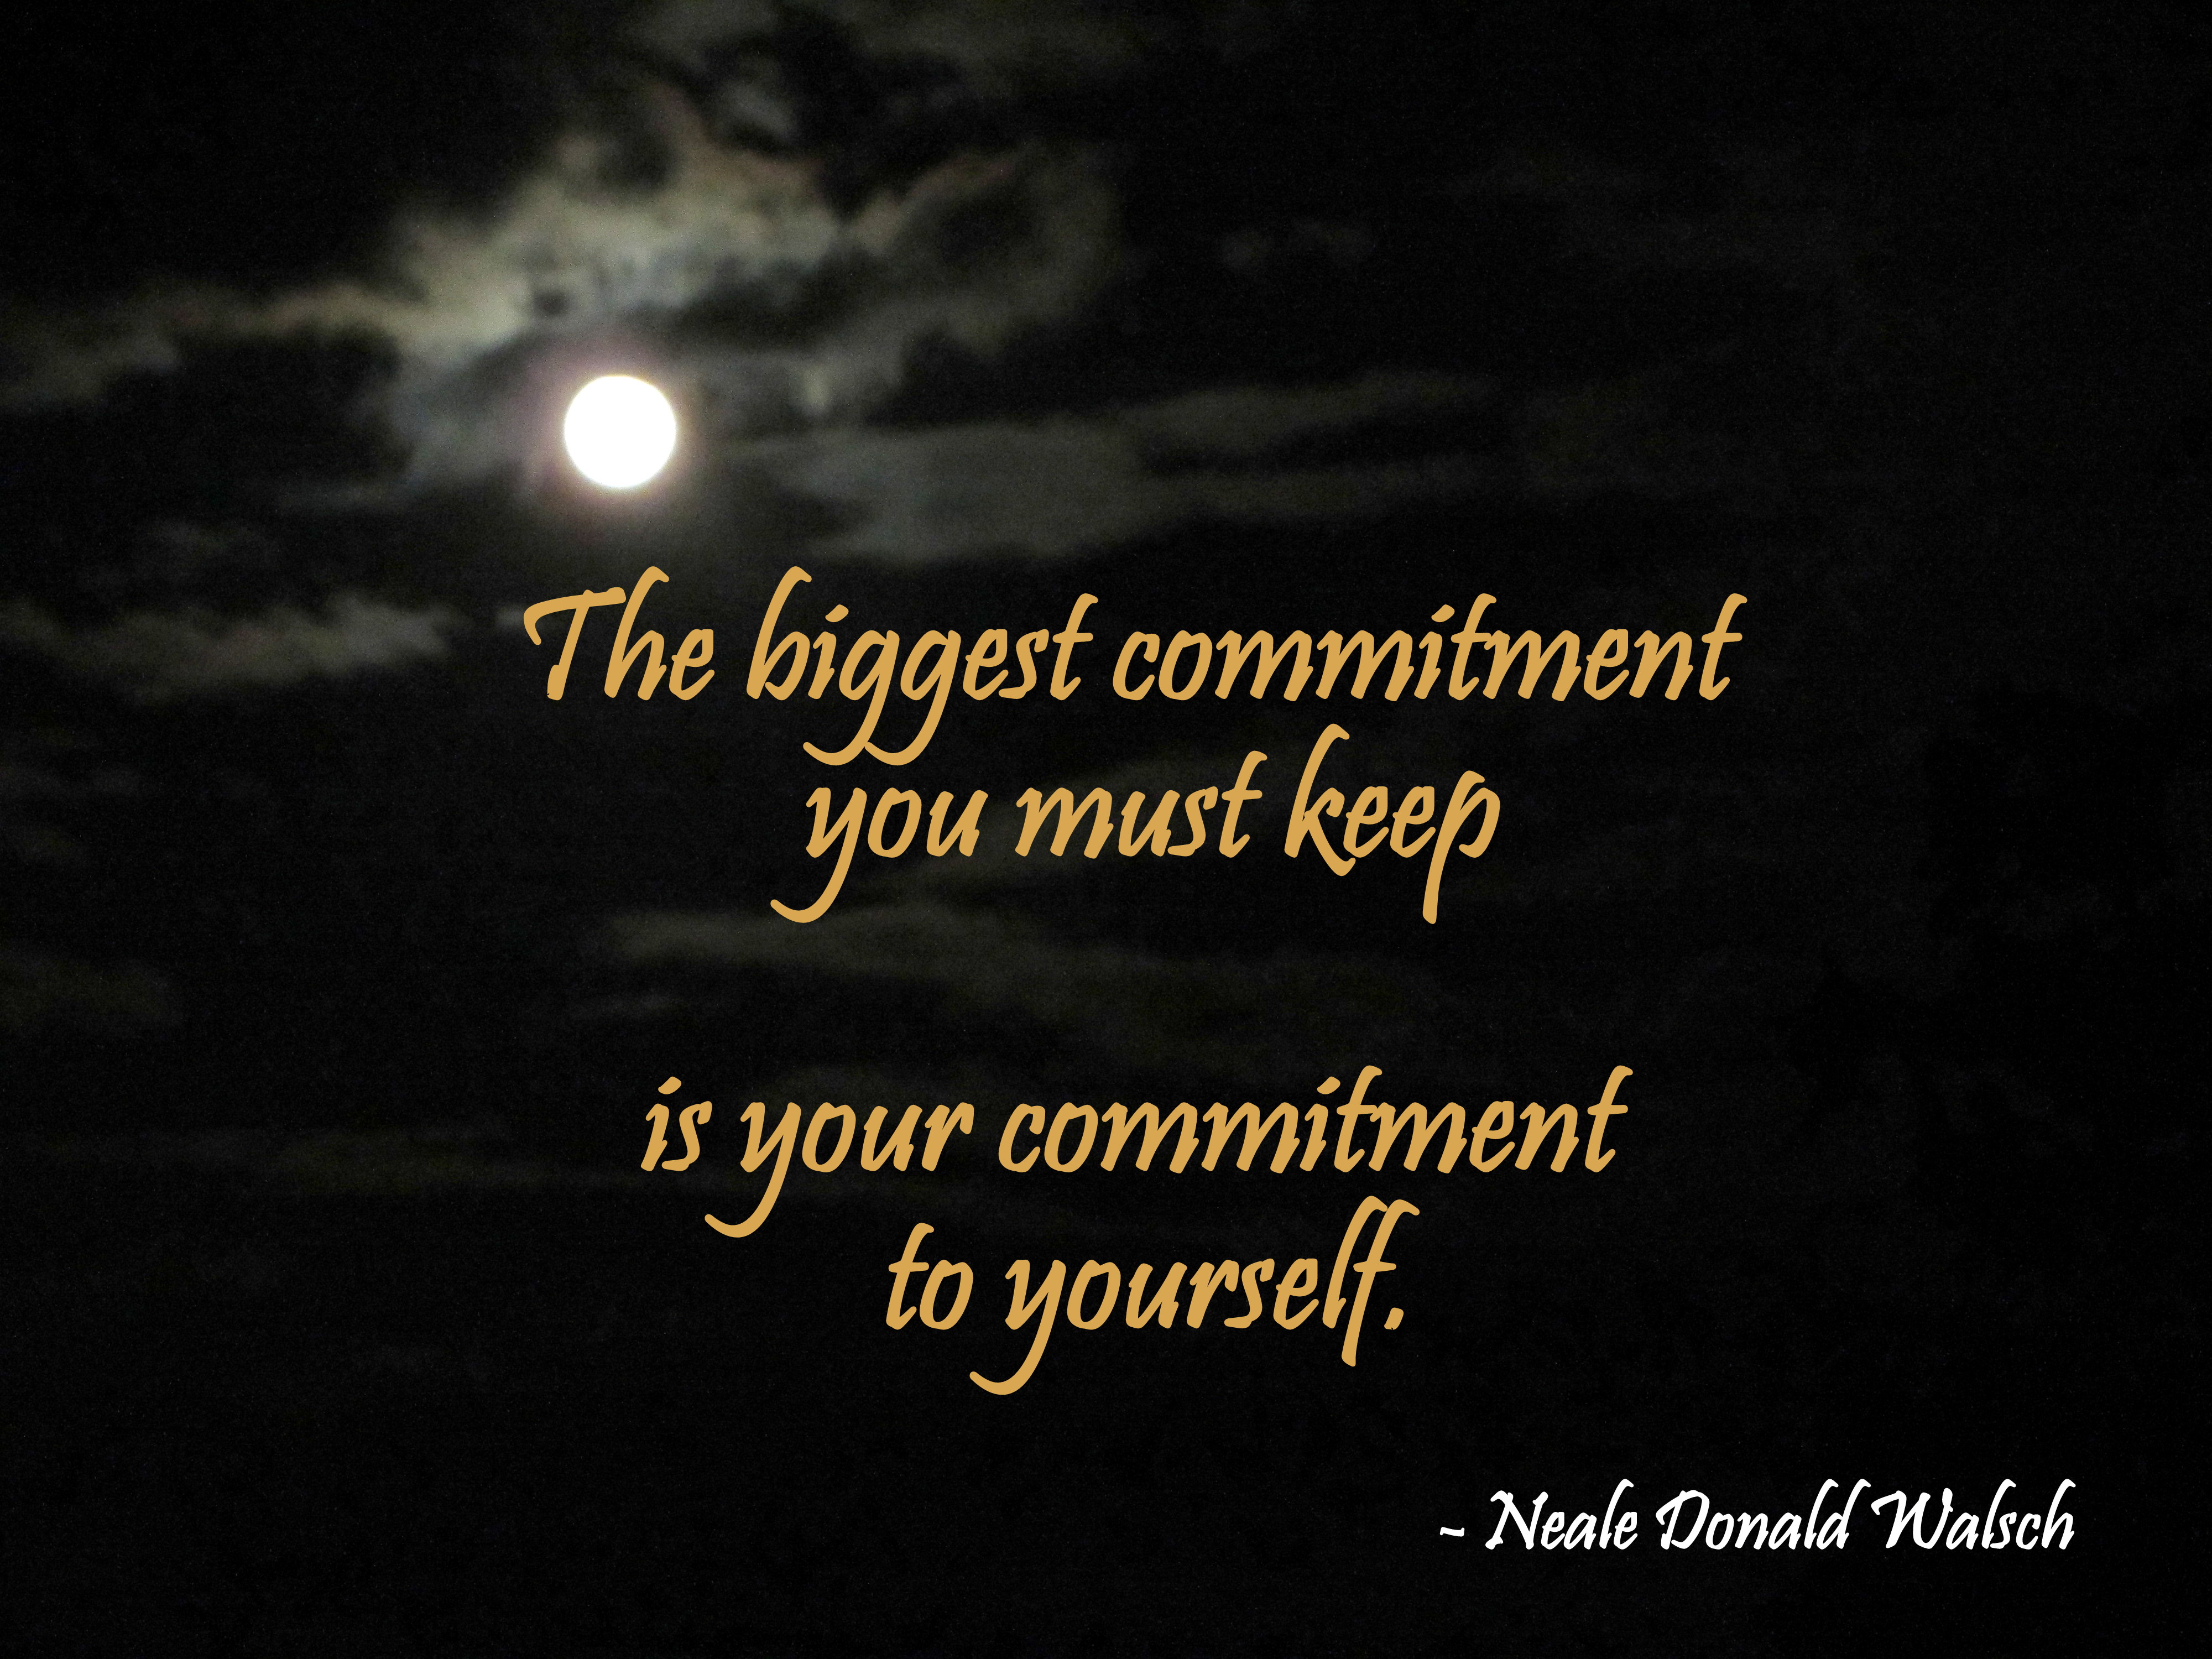 The biggest commitment you must keep is your commitment to yourself. Neale Donald Walsch